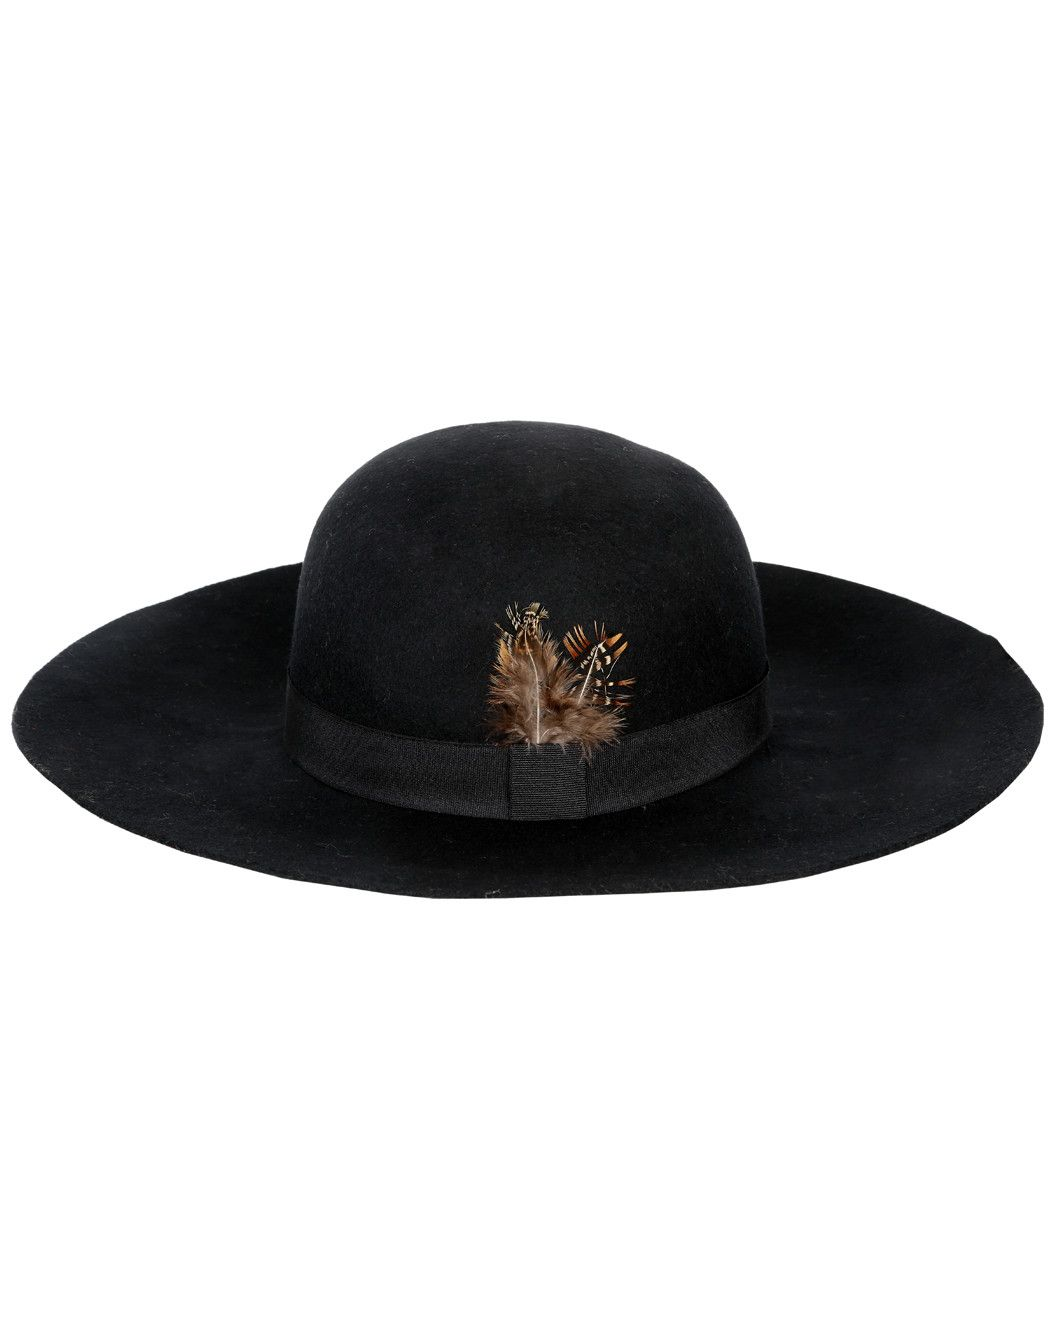 dcf360a838a00 Spotted this Steve Madden Women s Black Wool Floppy Hat on Rue La La. Shop  (quickly!)